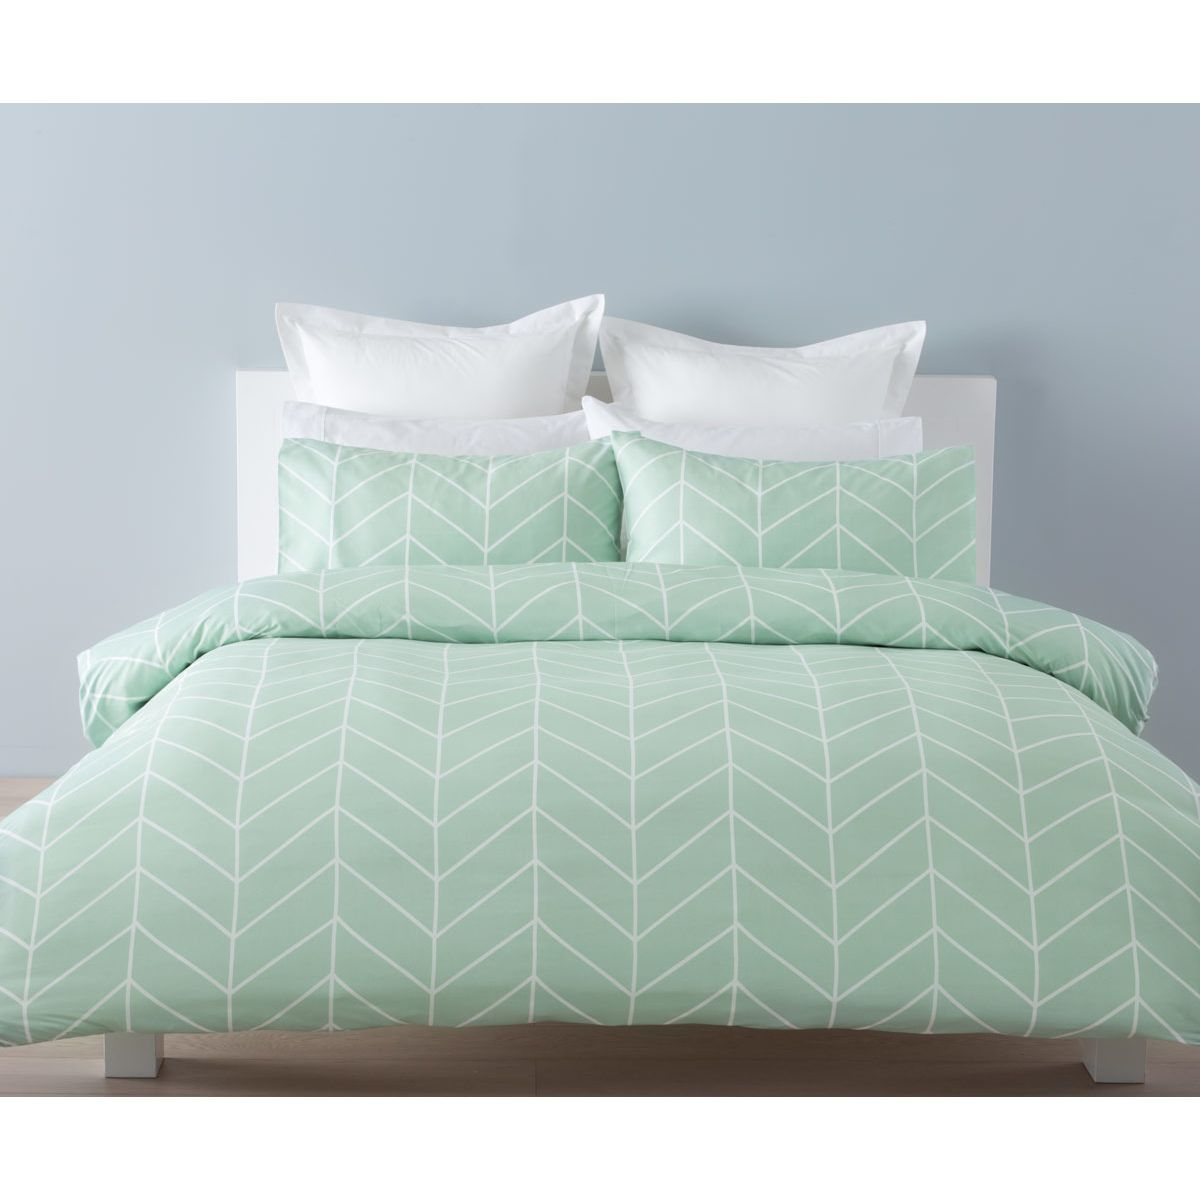 Robin Quilt Cover Set Double Bed Kmart Bedding Sets Mint